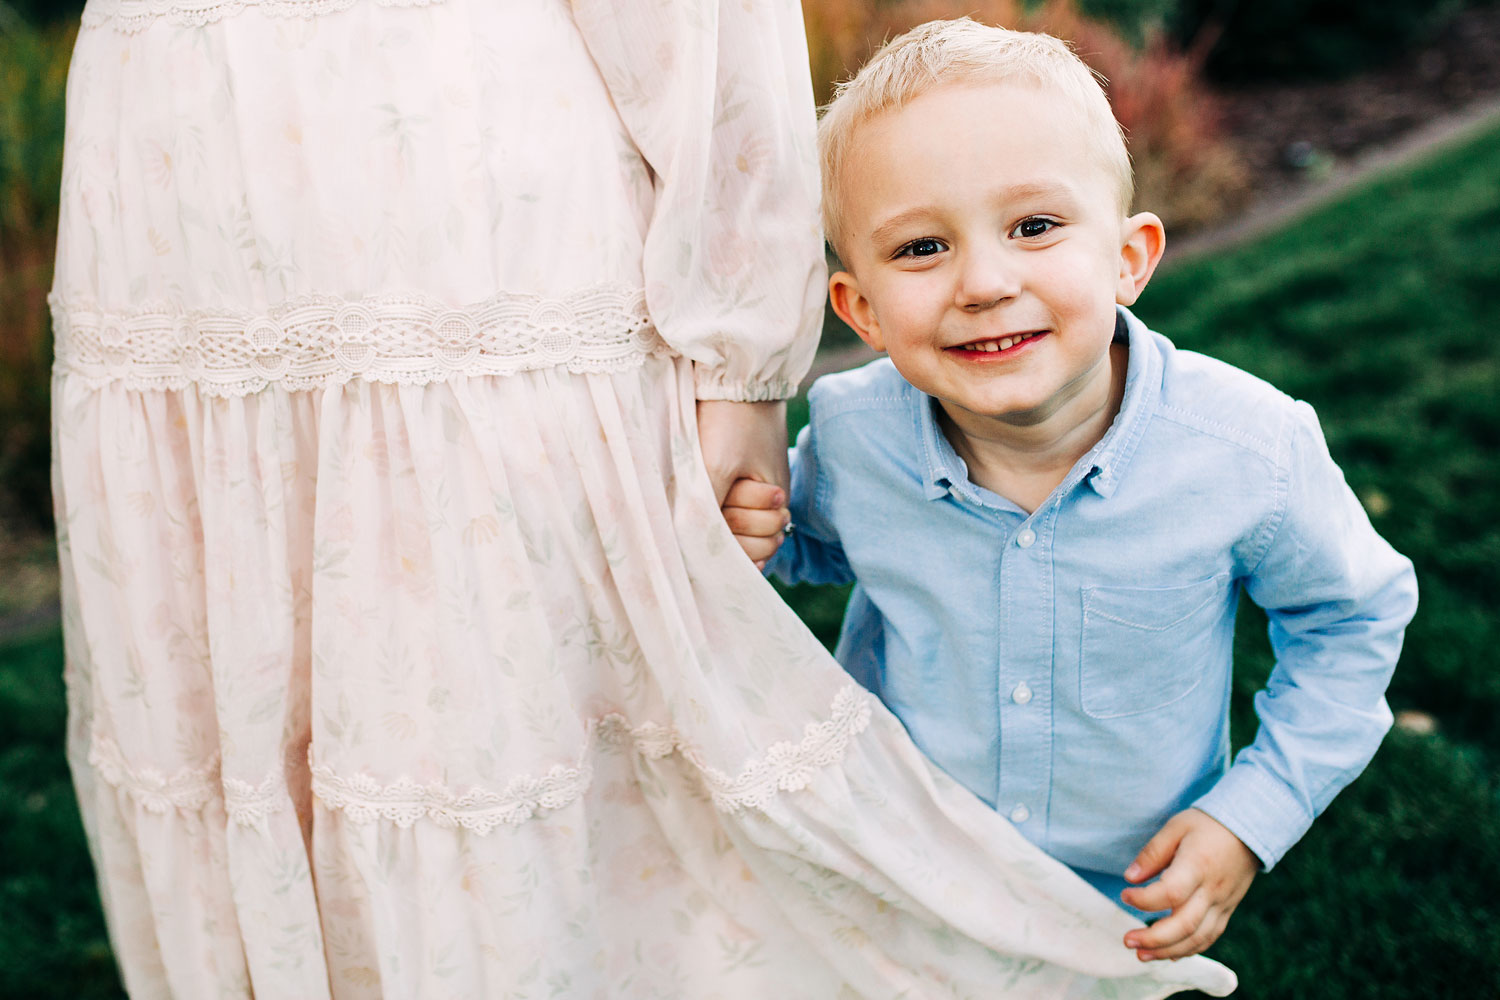 A boy holds his mom's dress during a lifestyle family photo session with Amy Wright Photography based out of Roseville, Rocklin, and Sacramento, California.